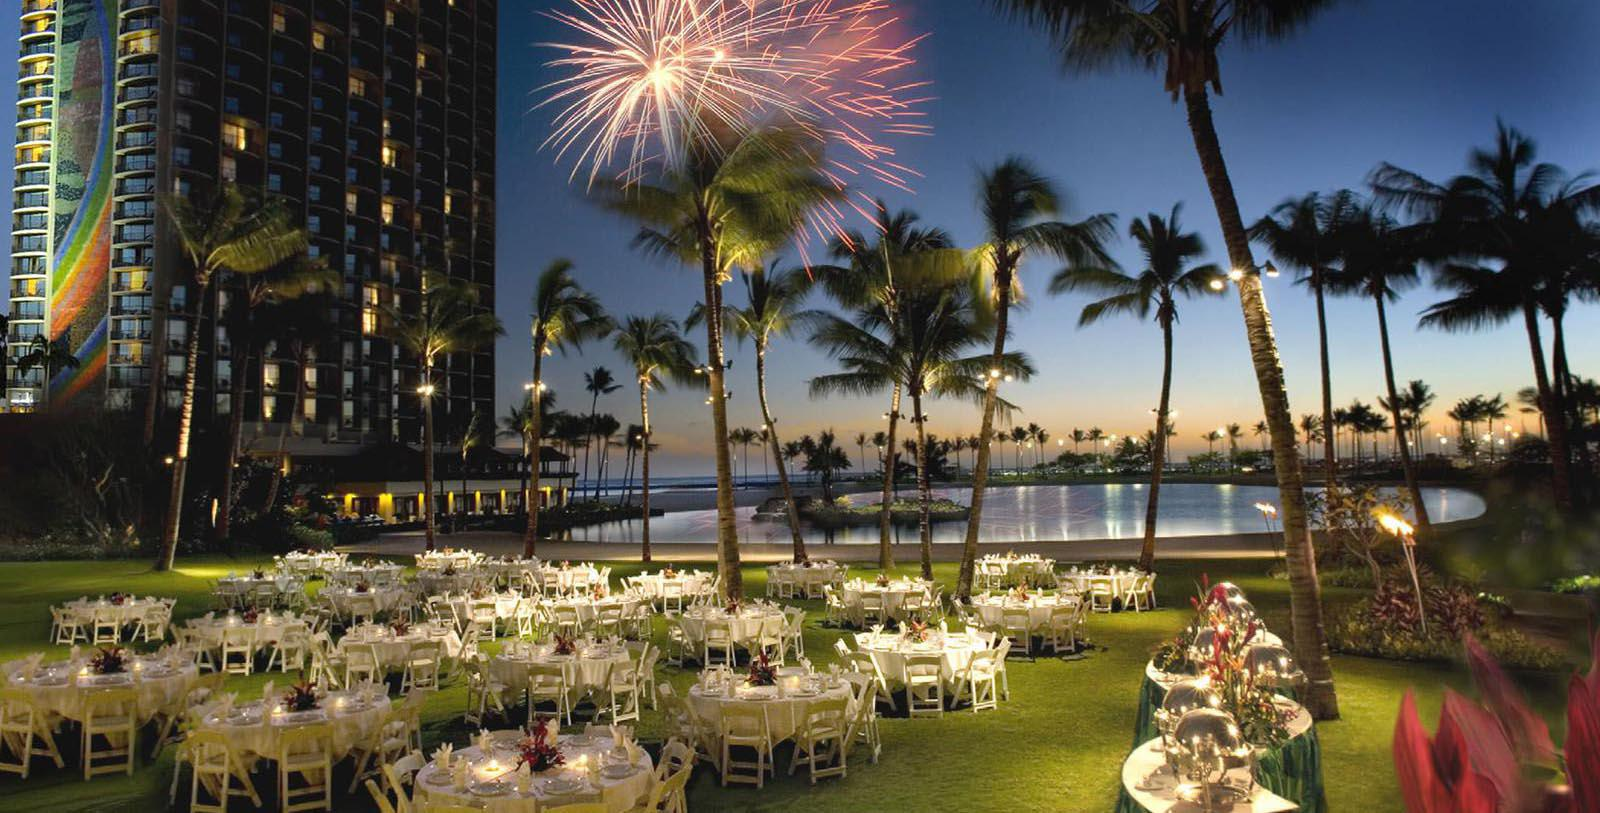 Image of fireworks over wedding reception Hilton Hawaiian Village® Waikiki Beach Resort, 1957, Member of Historic Hotels of America, in Honolulu, Hawaii, Special Occasions